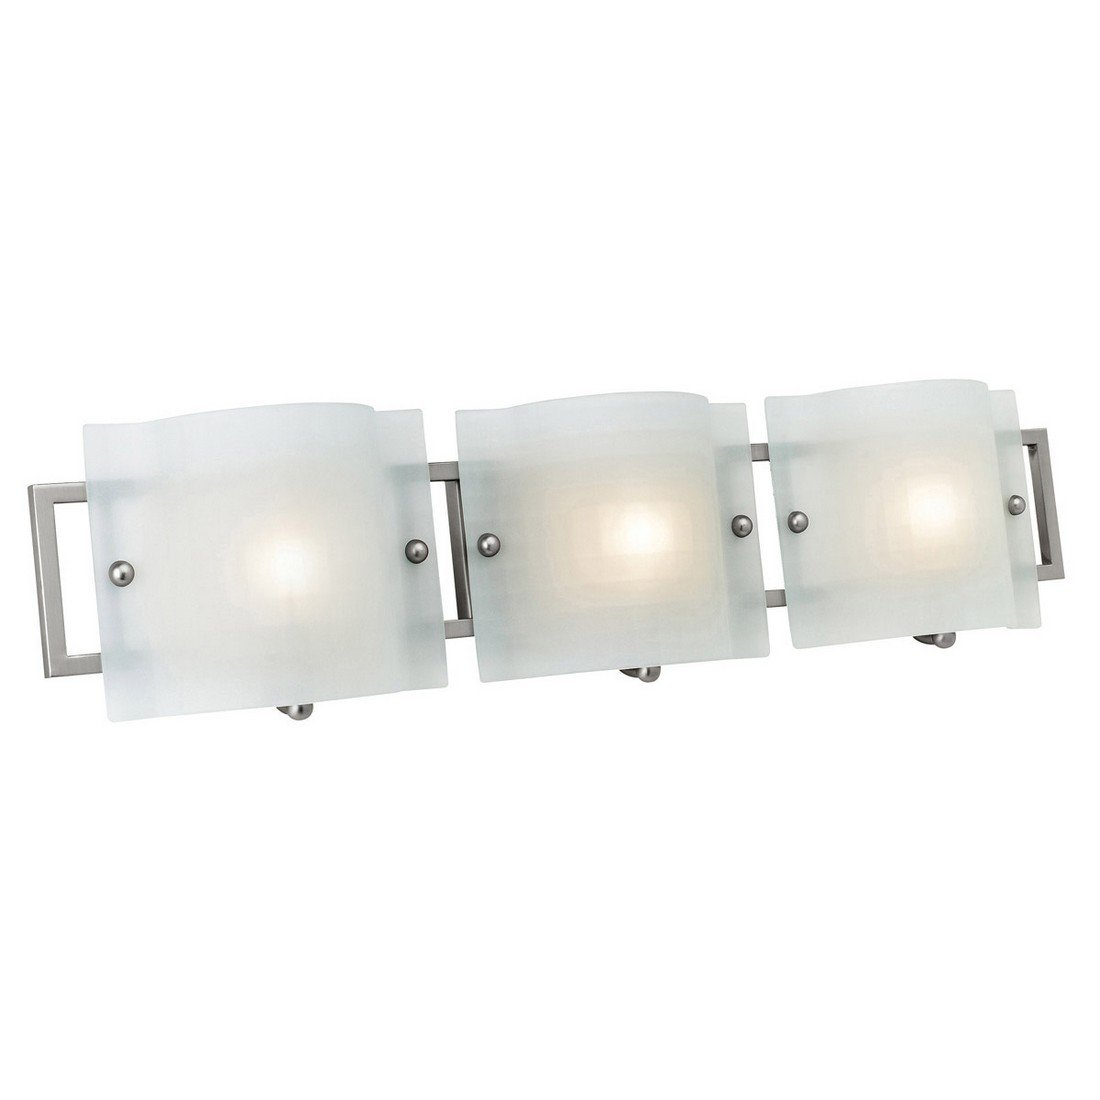 Access Lighting 53313-BS/CKF Nara 3-Light ADA Wall/Vanity Fixture, Brushed Steel Finish with Checkered Frosted Glass Shades